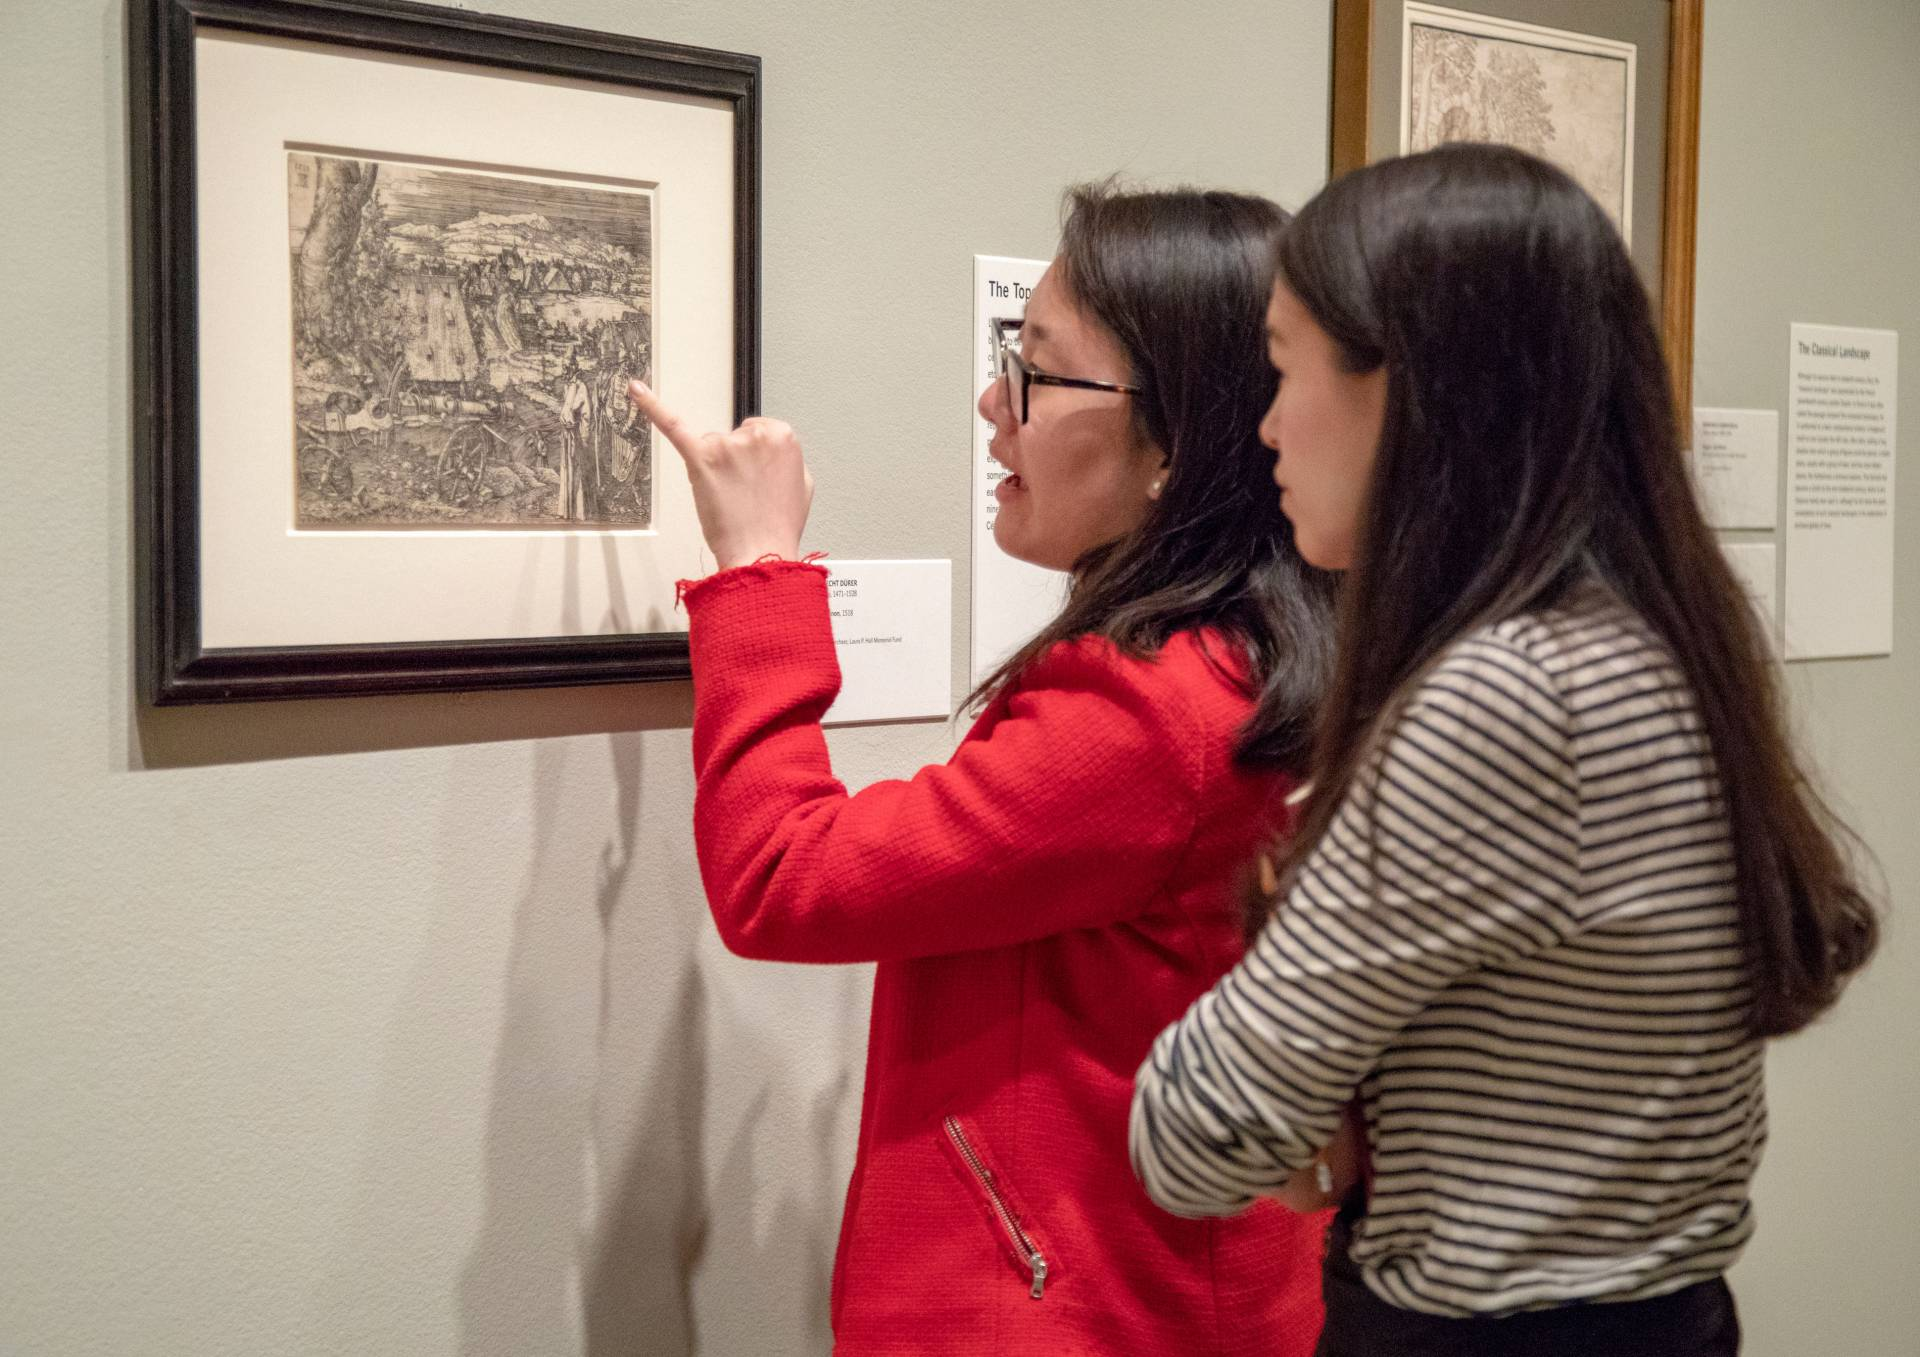 Sarah Cho and Sarah Rapoport look at work by Albrecht Durer